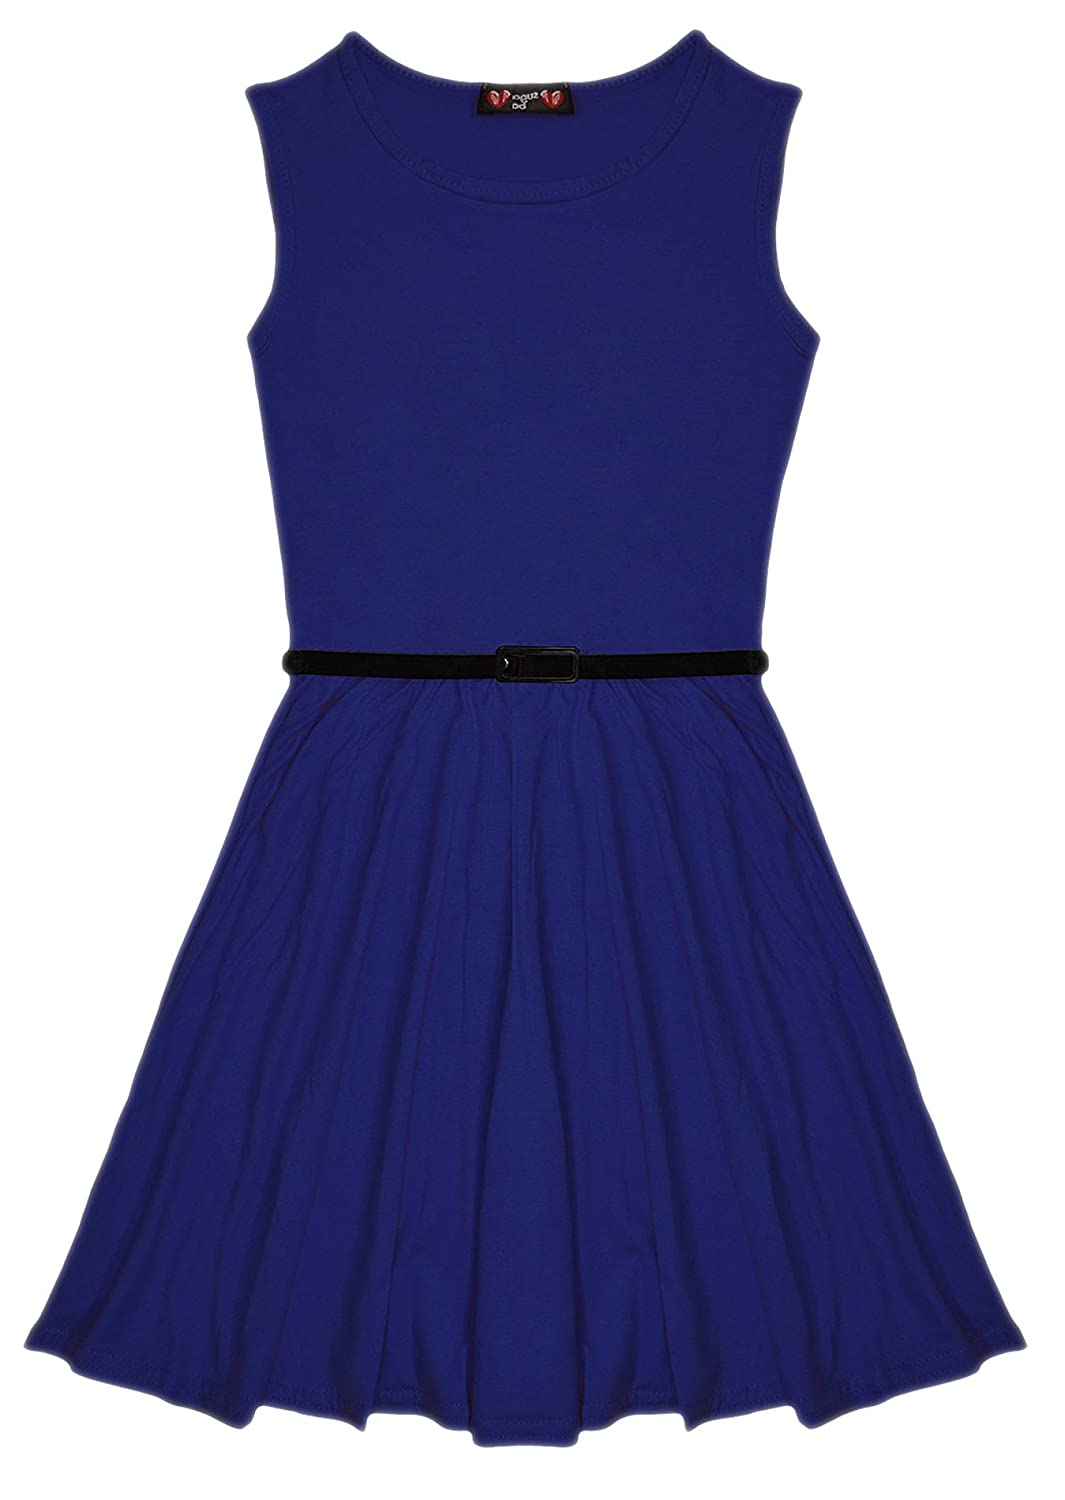 Aelstores New Girls Plain Retro Skater Dress with Belt Age Size 7-13 Years Sugar babe